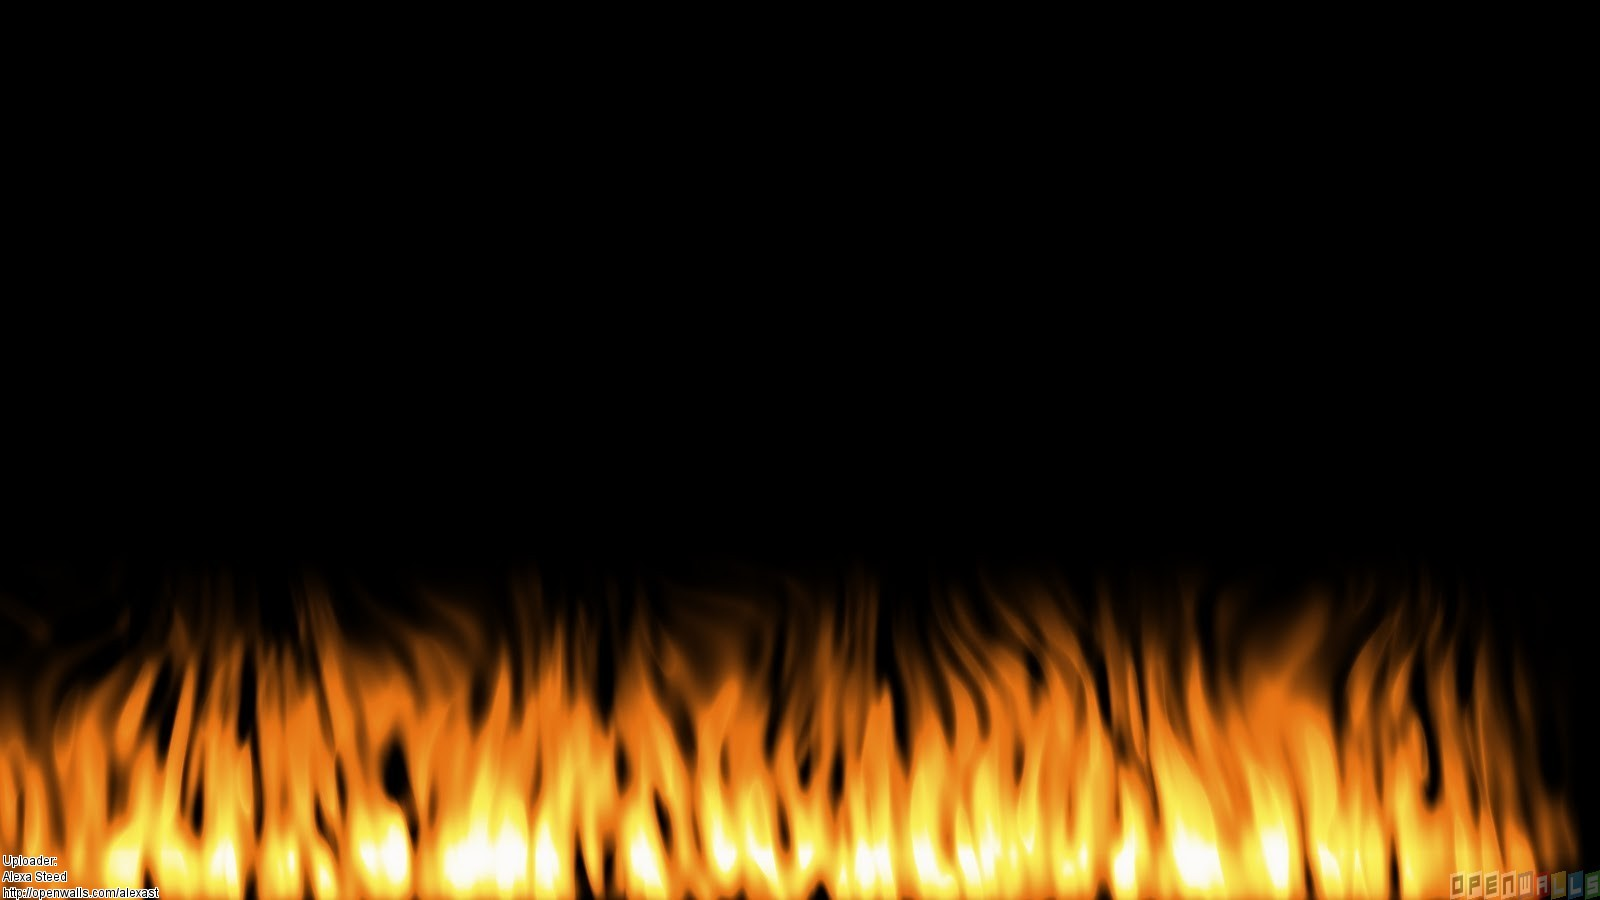 75 Flames Background On Wallpapersafari